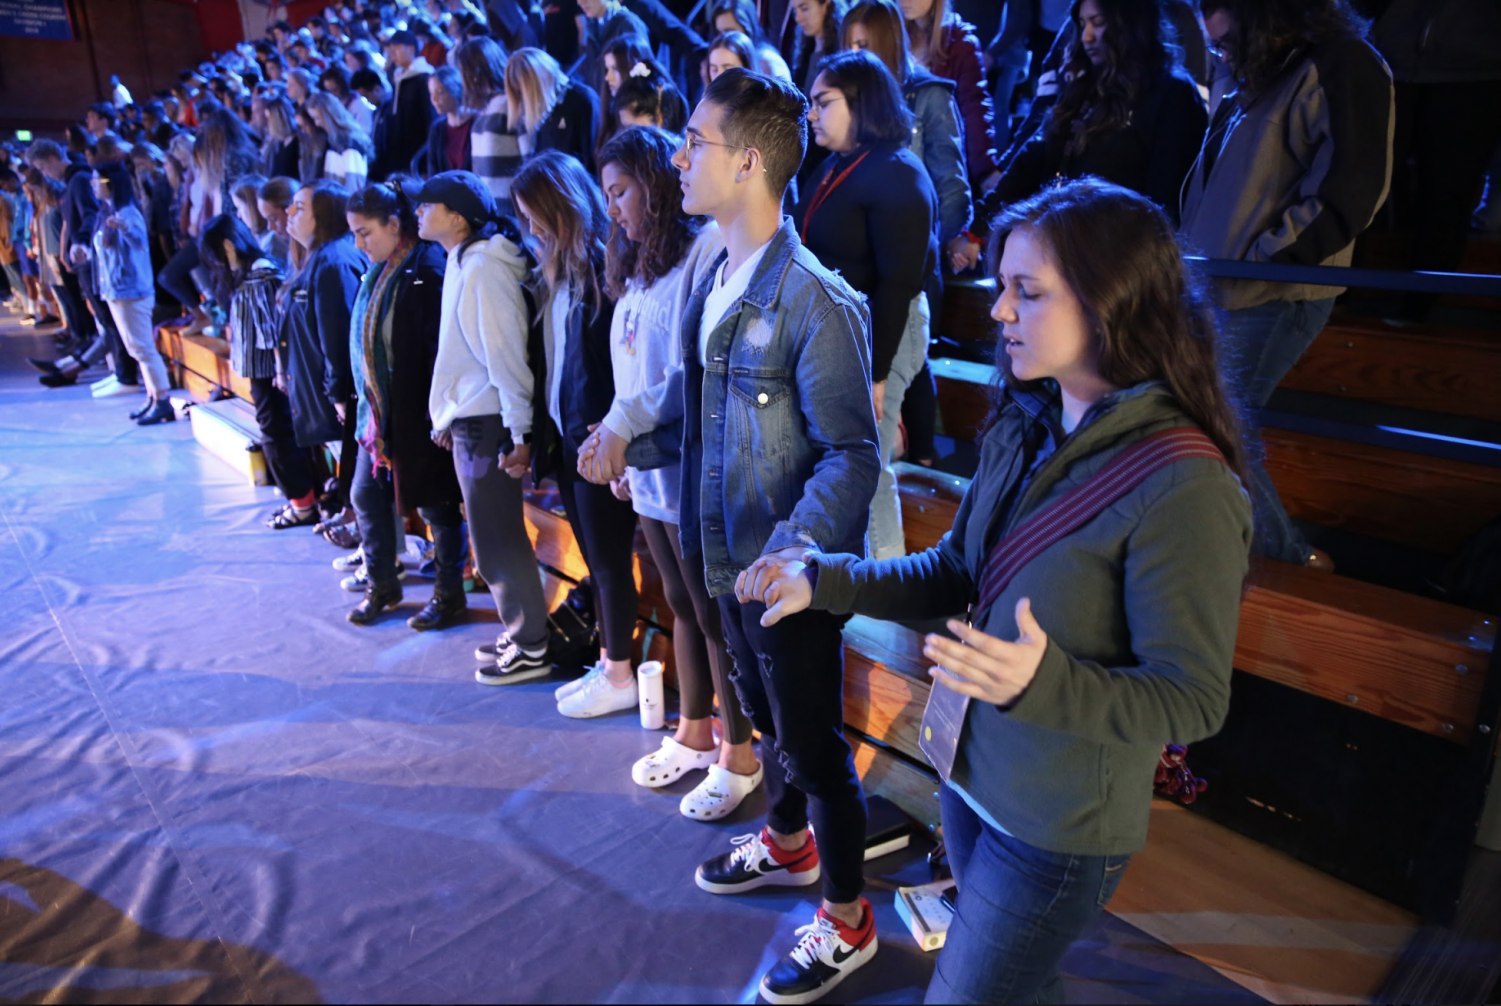 Students join hands in prayer at Missions Conference Day 2.